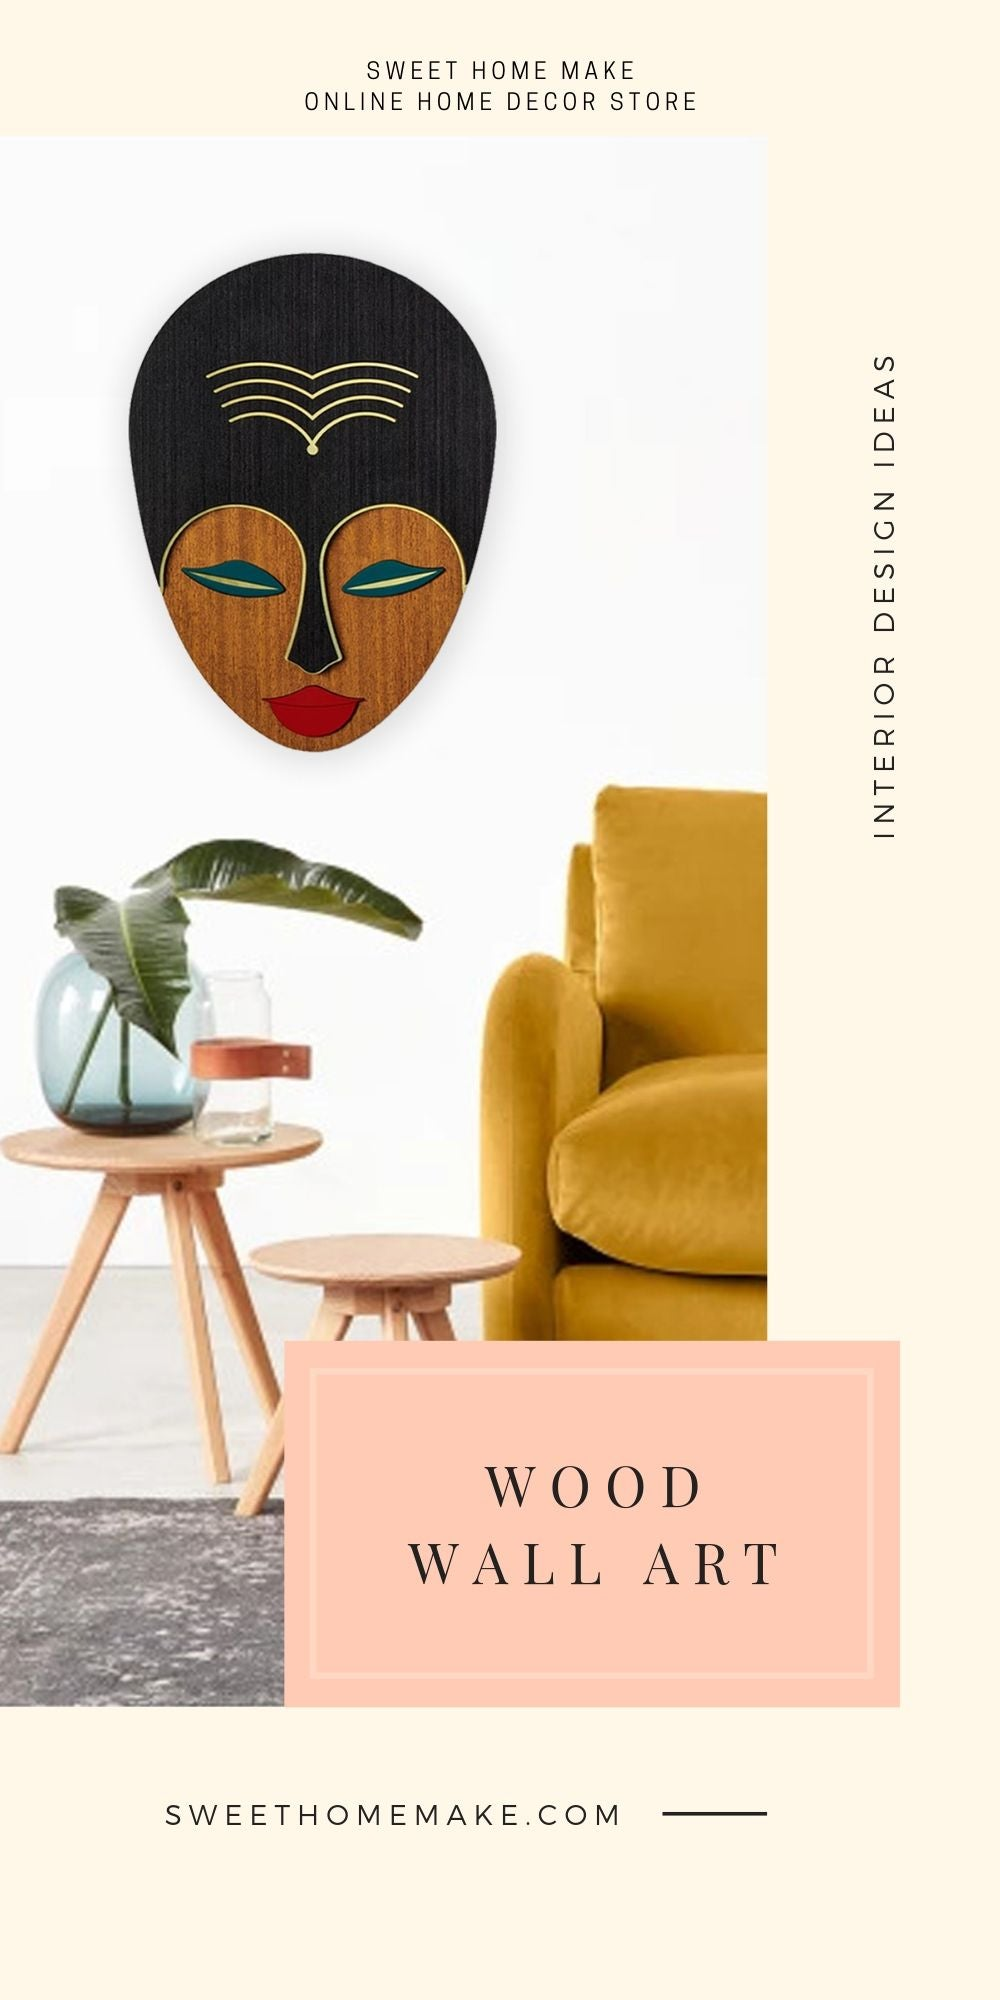 Wood Wall Art with Female Face